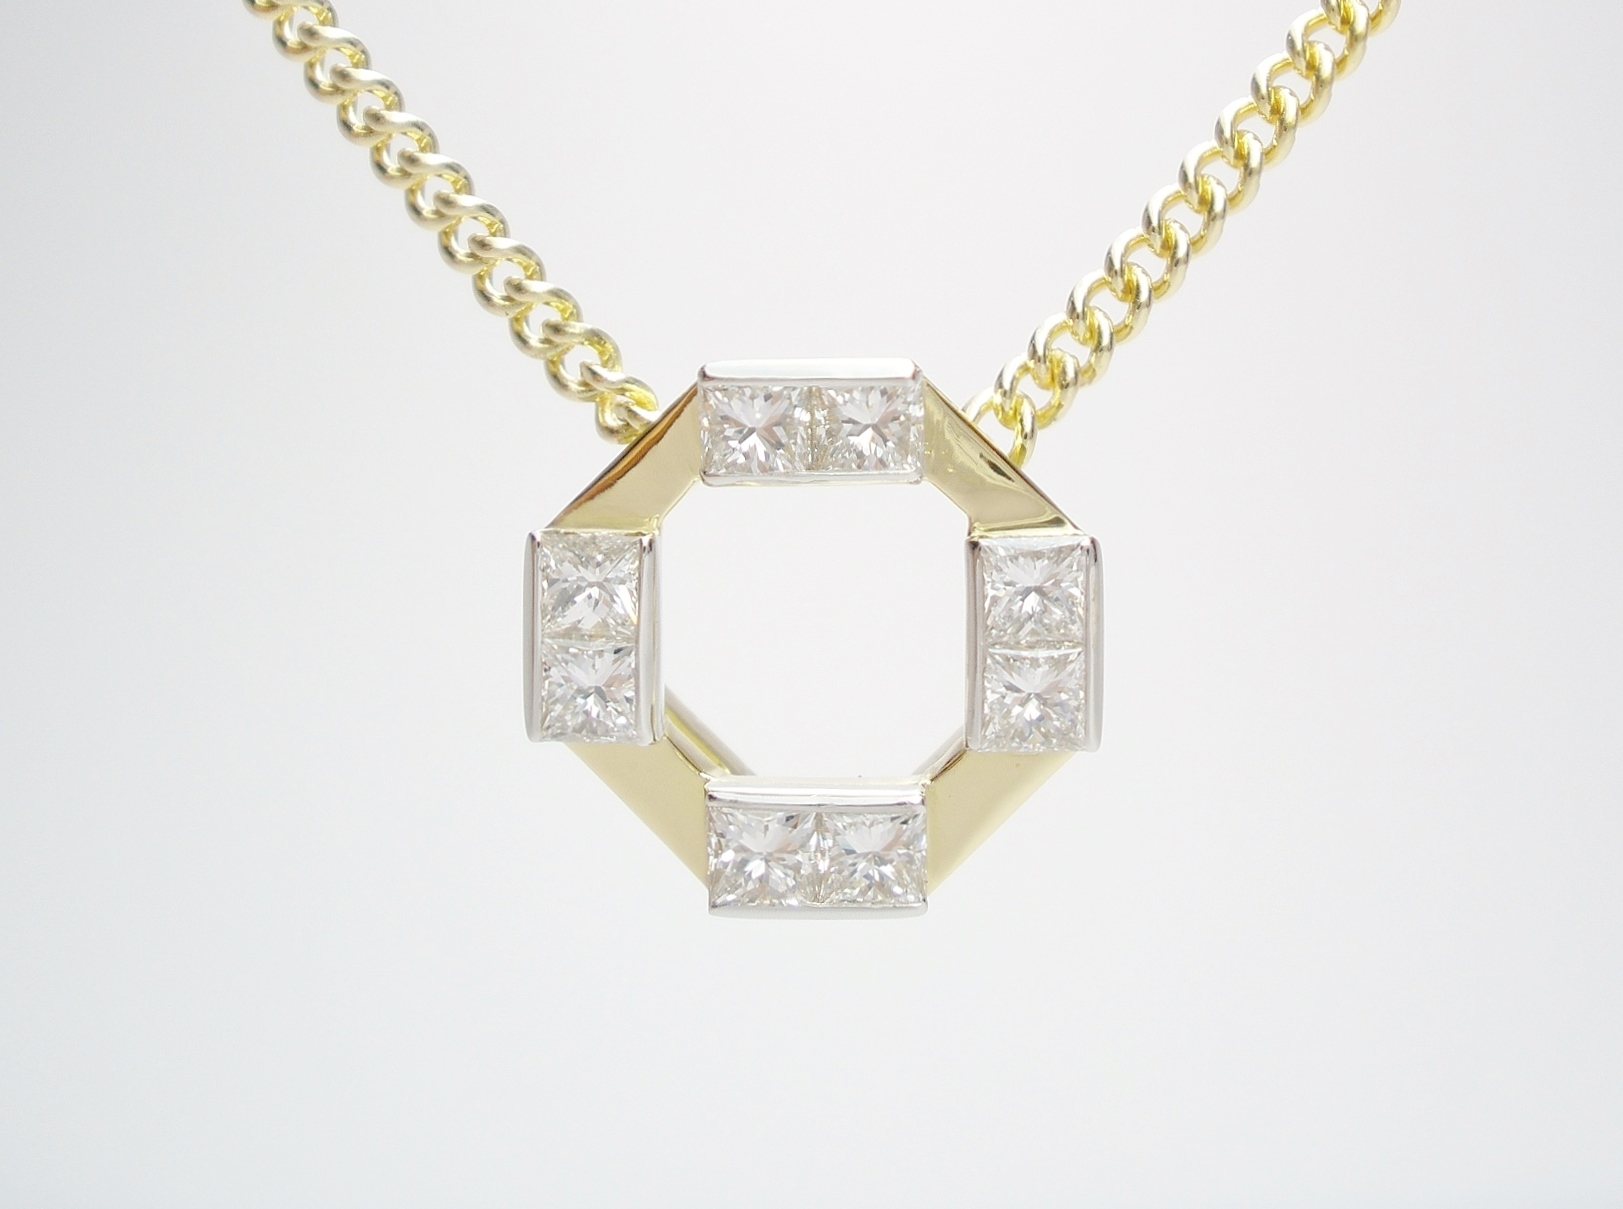 18ct. yellow gold & platinum octagonal pendant set with 8 princess cut diamonds.